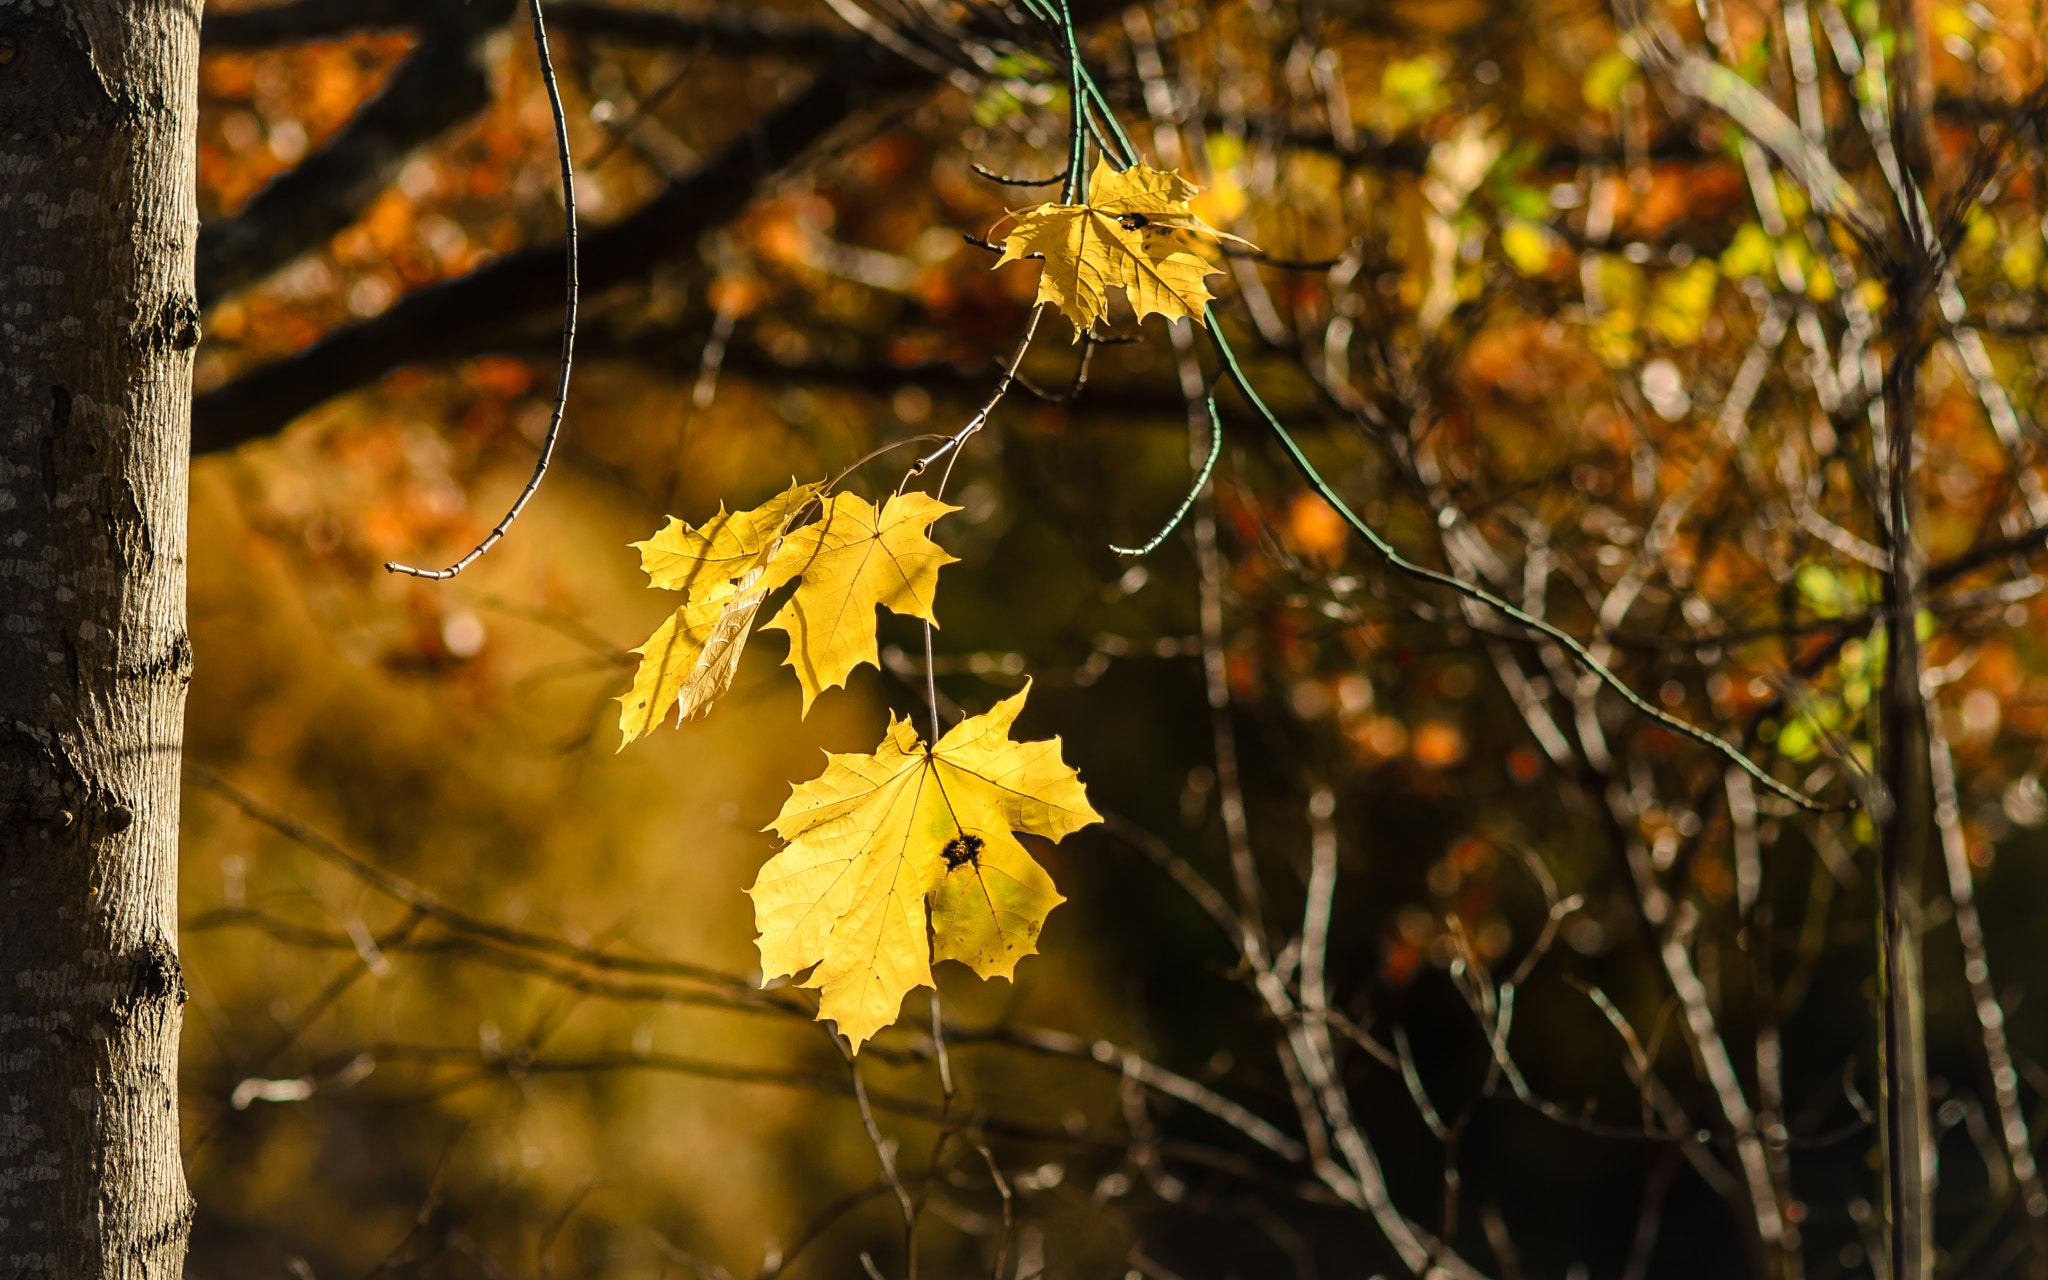 Photograph Leaves in sunlight by J-O Eriksson on 500px